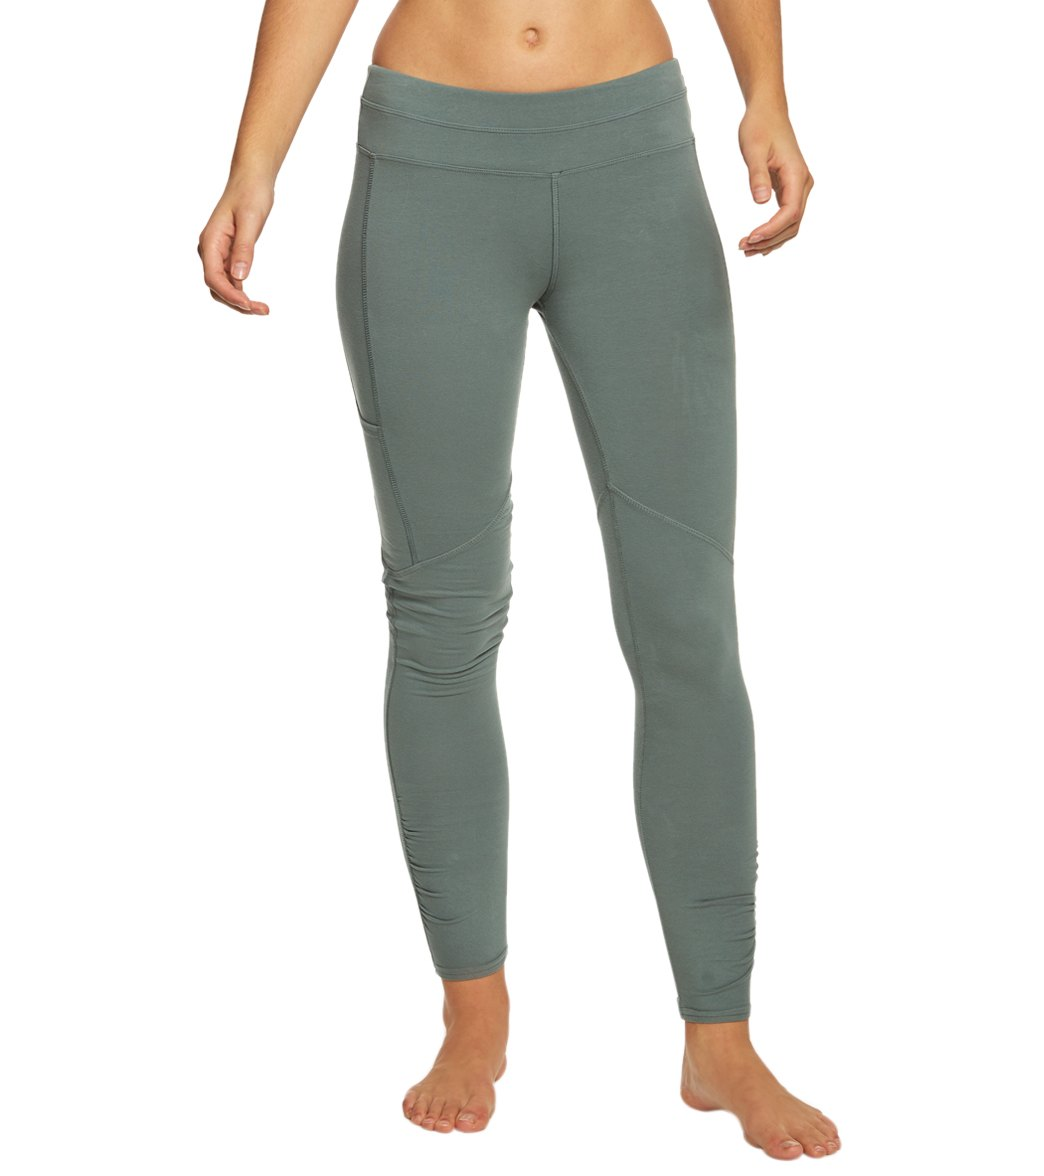 80c6230bf7c120 Sports & Outdoors Activewear Hard Tail 6 Pocket Cargo Ankle Leggings